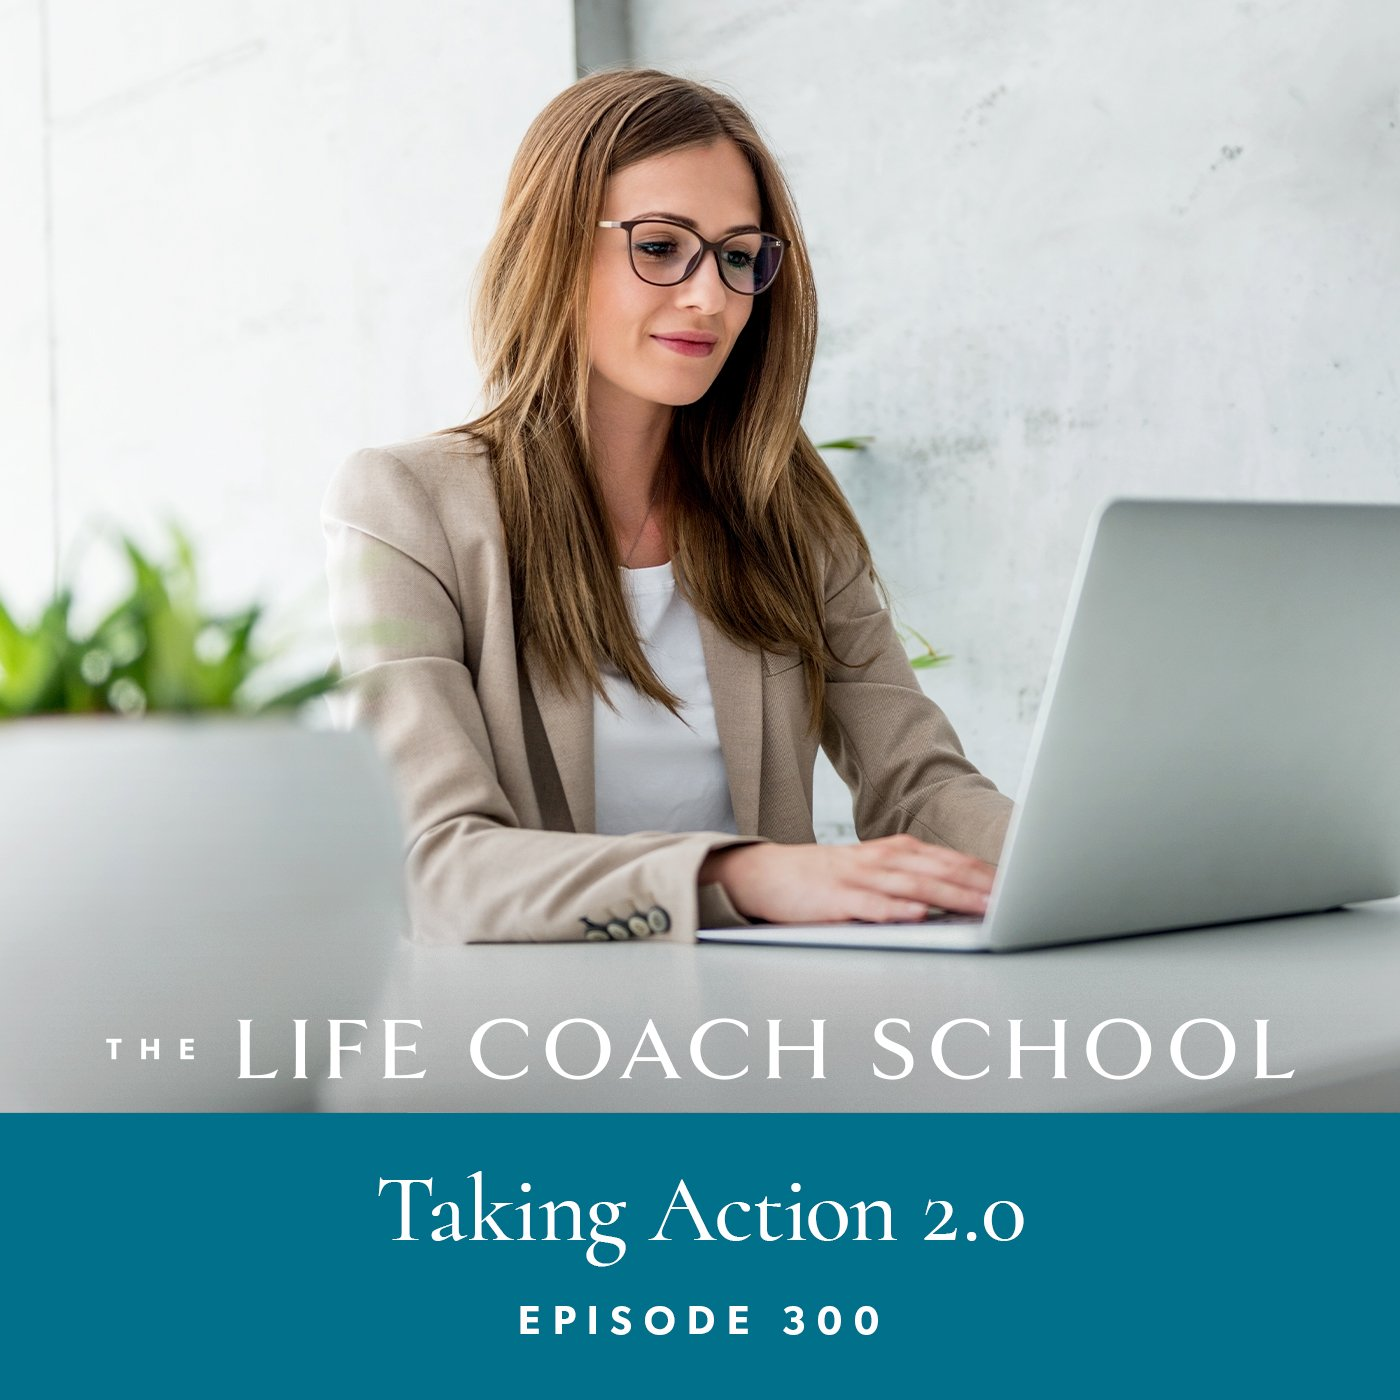 The Life Coach School Podcast with Brooke Castillo | Episode 300 | Great Teachers